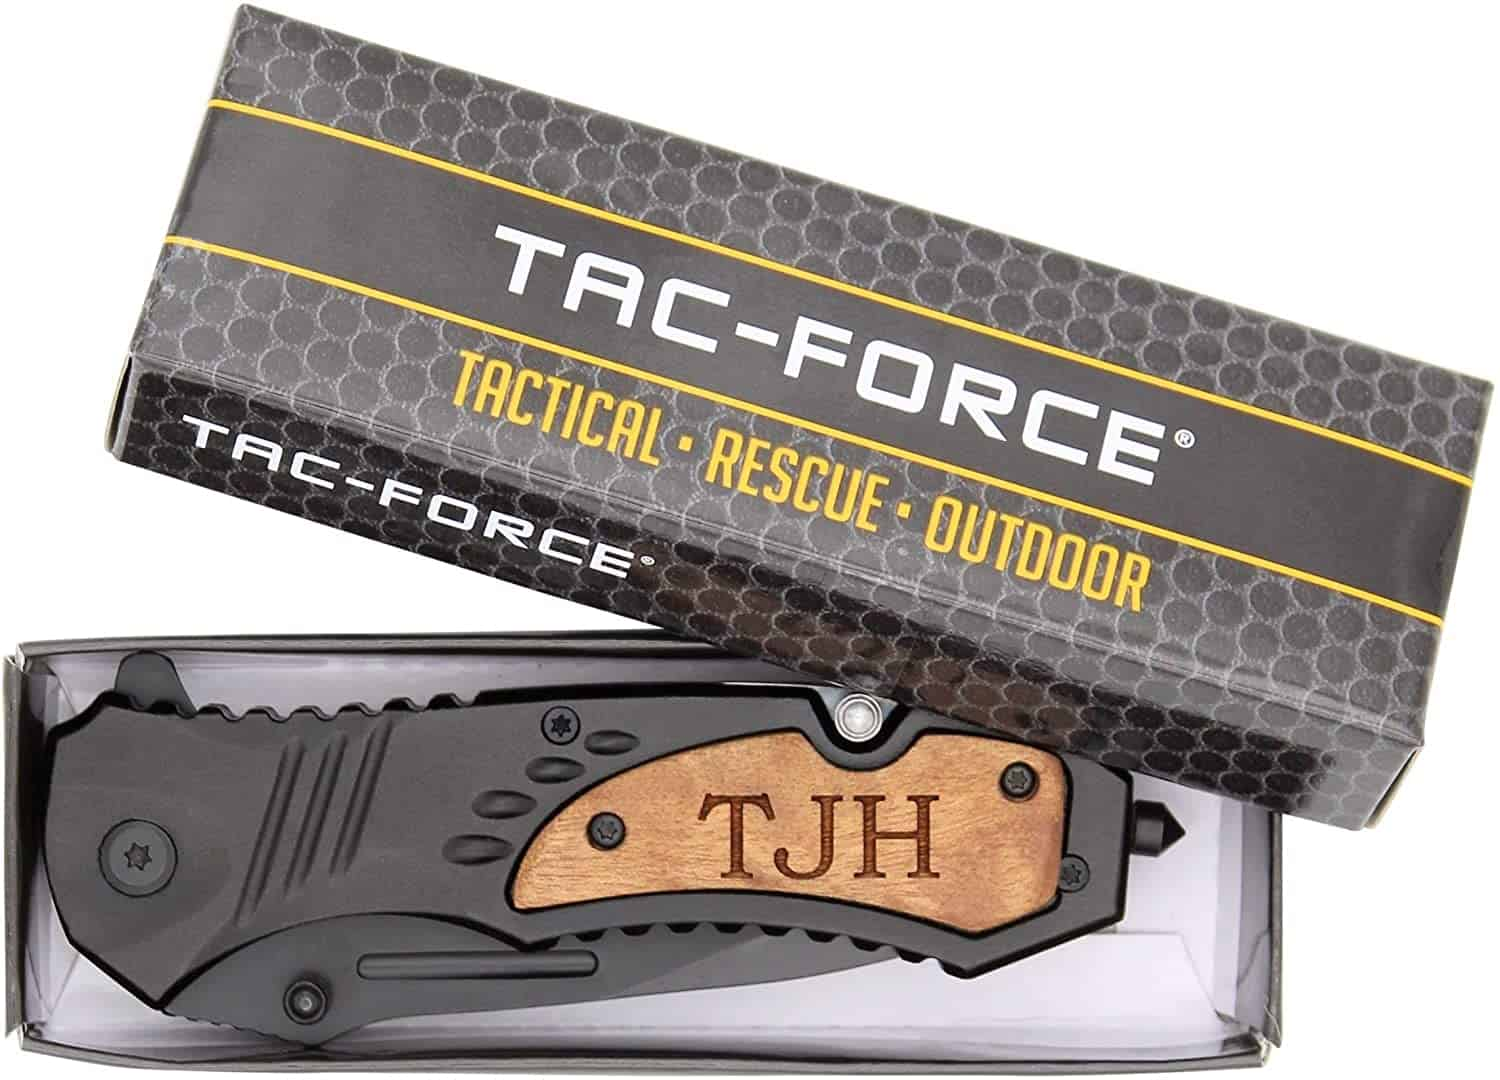 good retirement gifts for men: Engraved Pocket Knife in a box